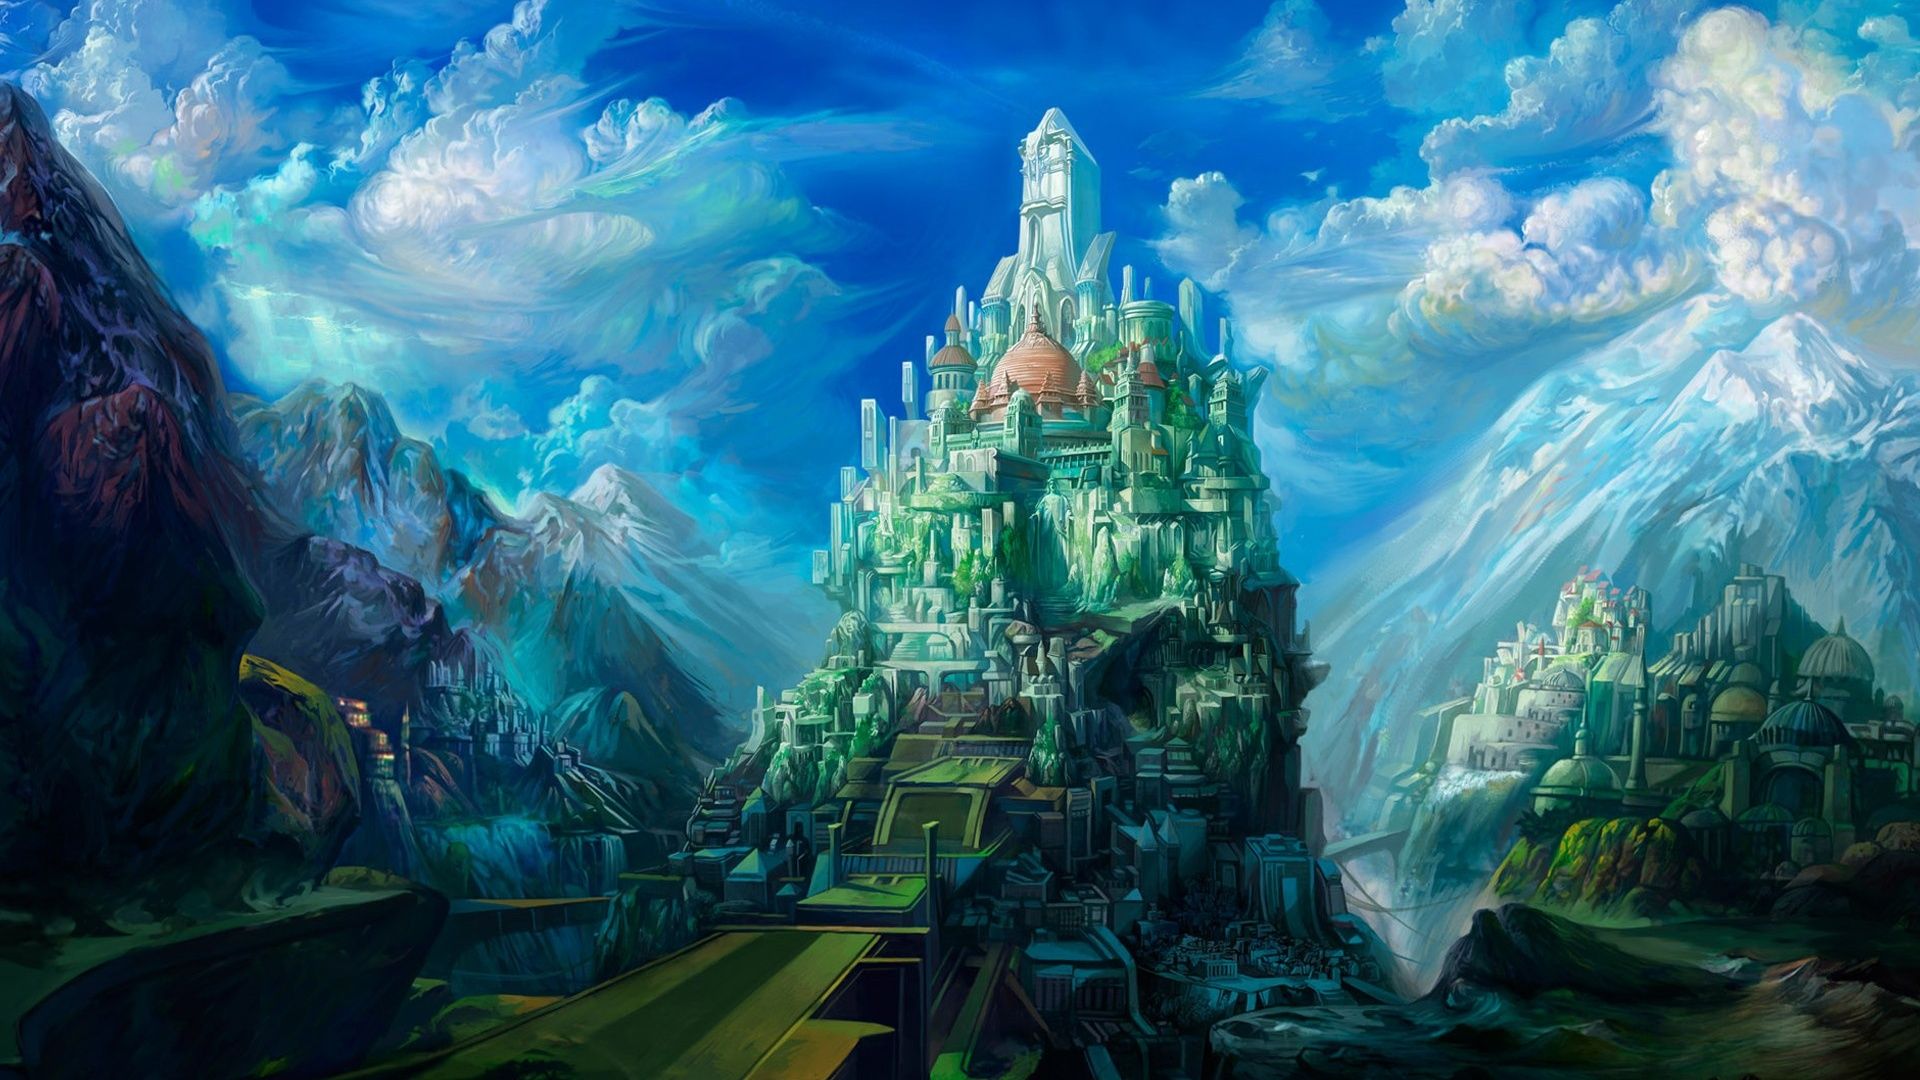 Fantasy Castle Wallpaper 15989